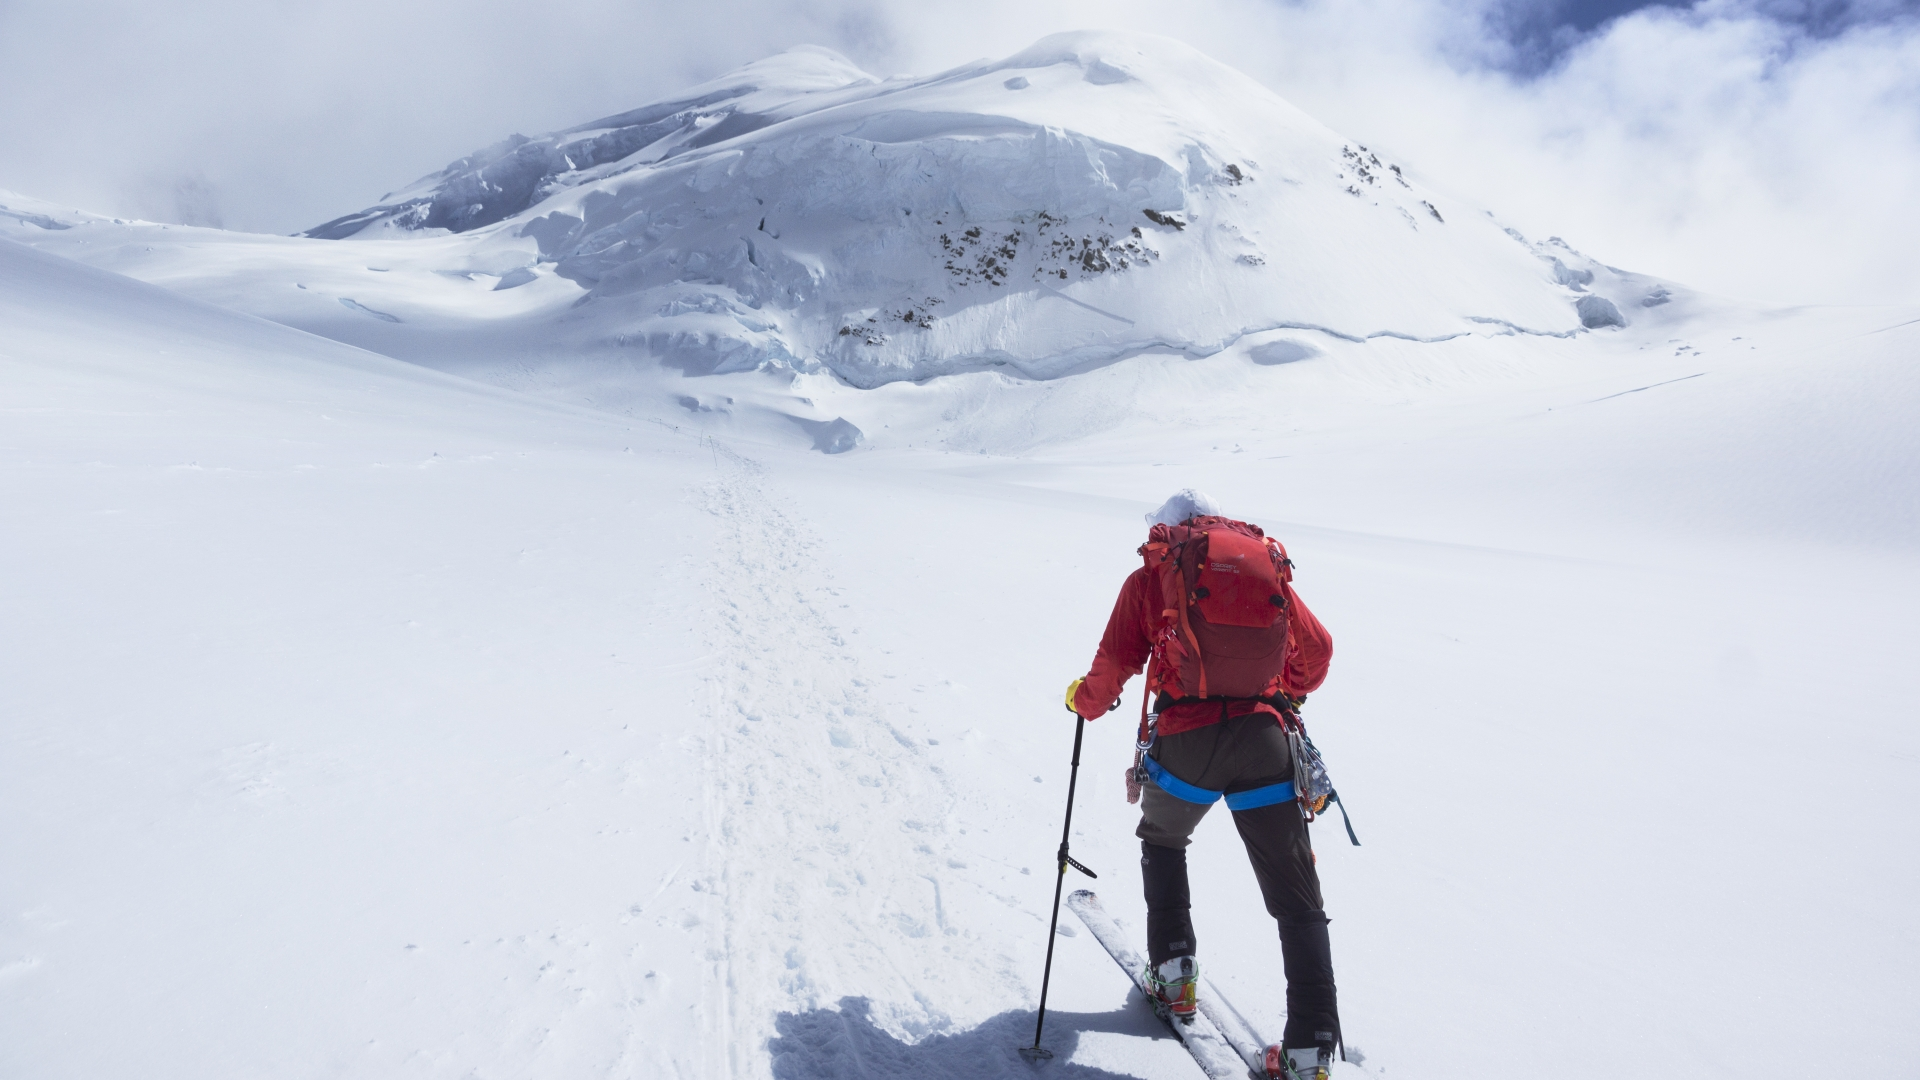 Person cross-country skiing in the snow at Denali National Park